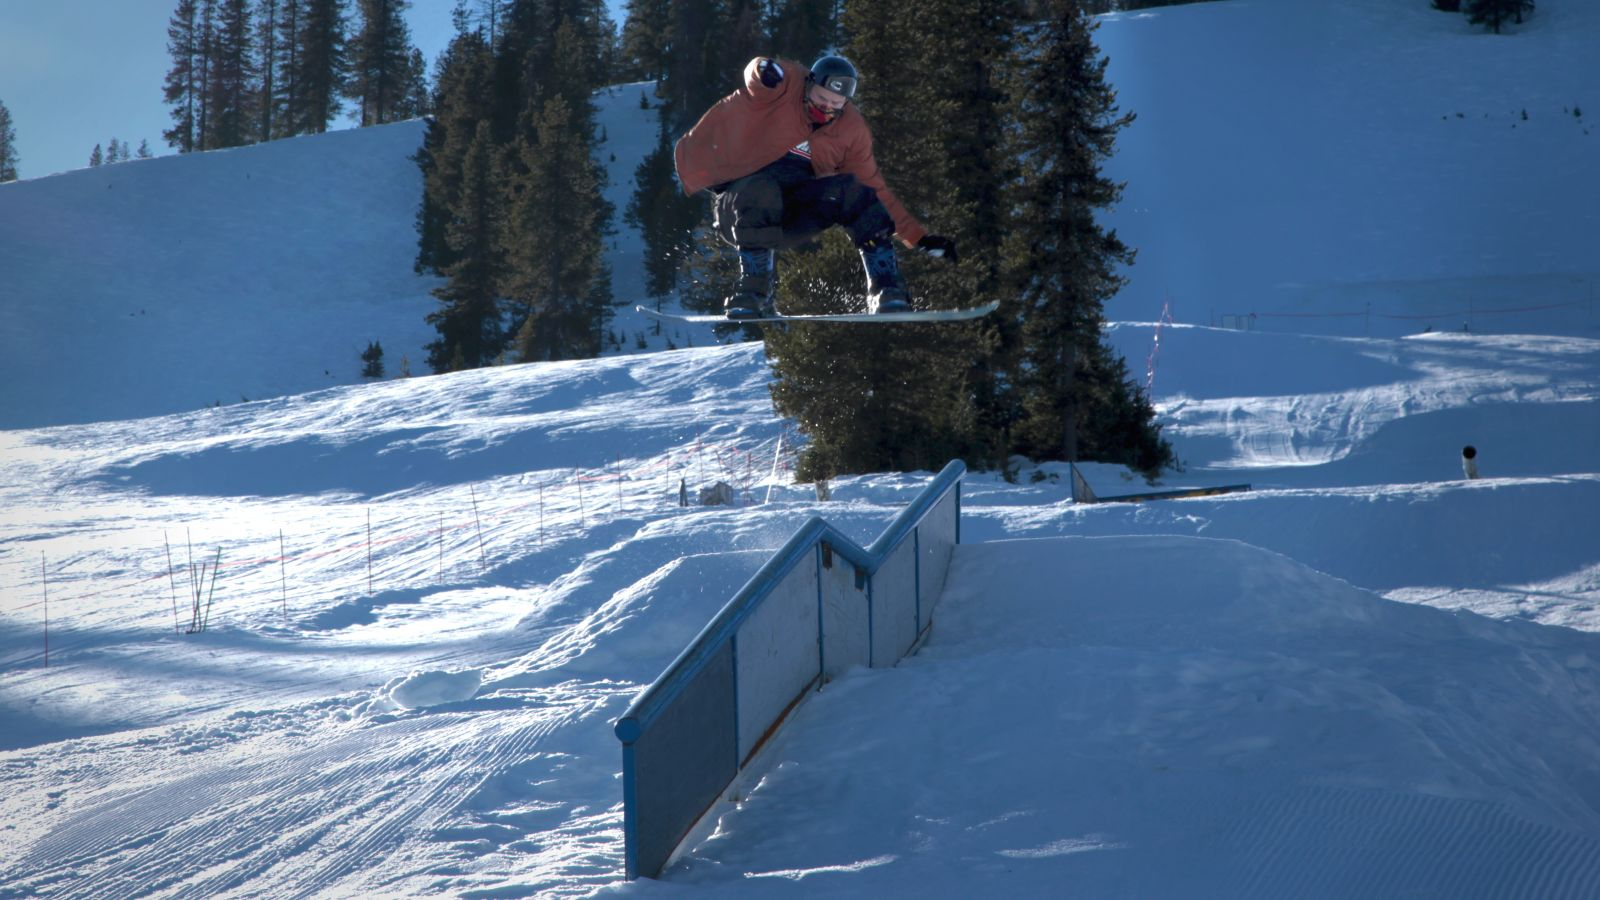 Snowboarding and massive jumps at Lookout